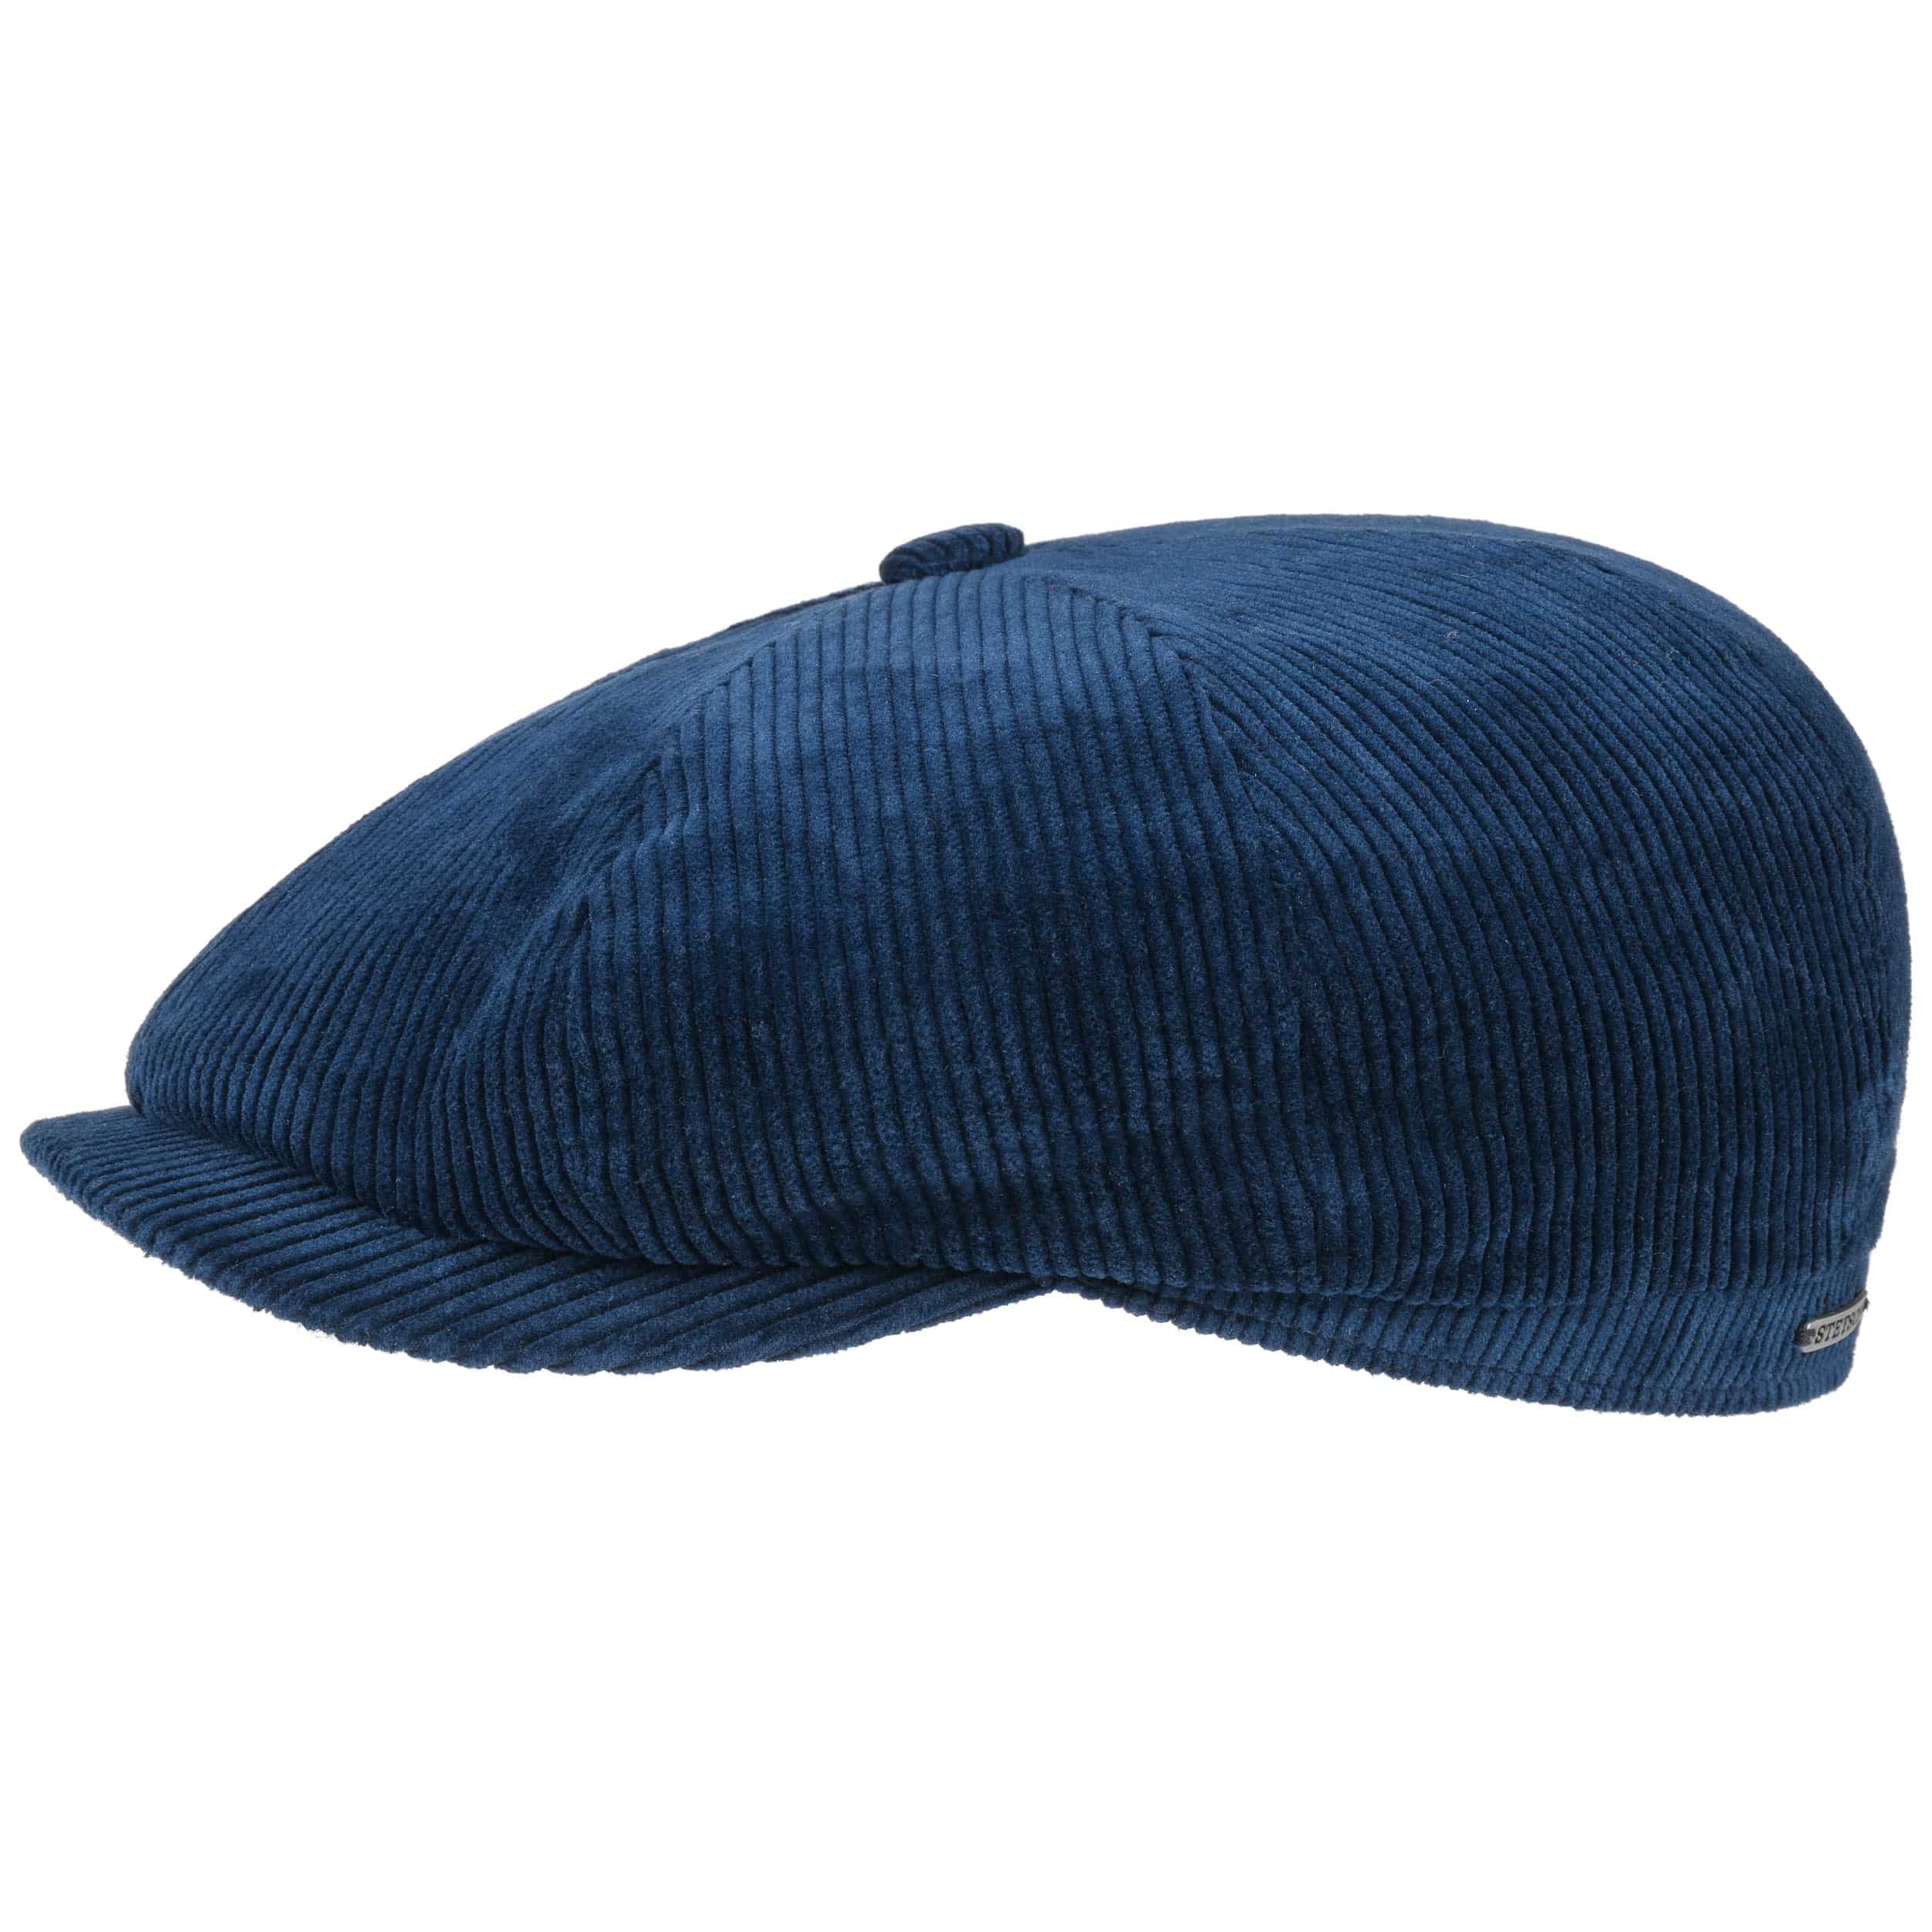 Mens Corduroy Flat Cap Peaked Country Cord Hat Sizes 56 to 62cm